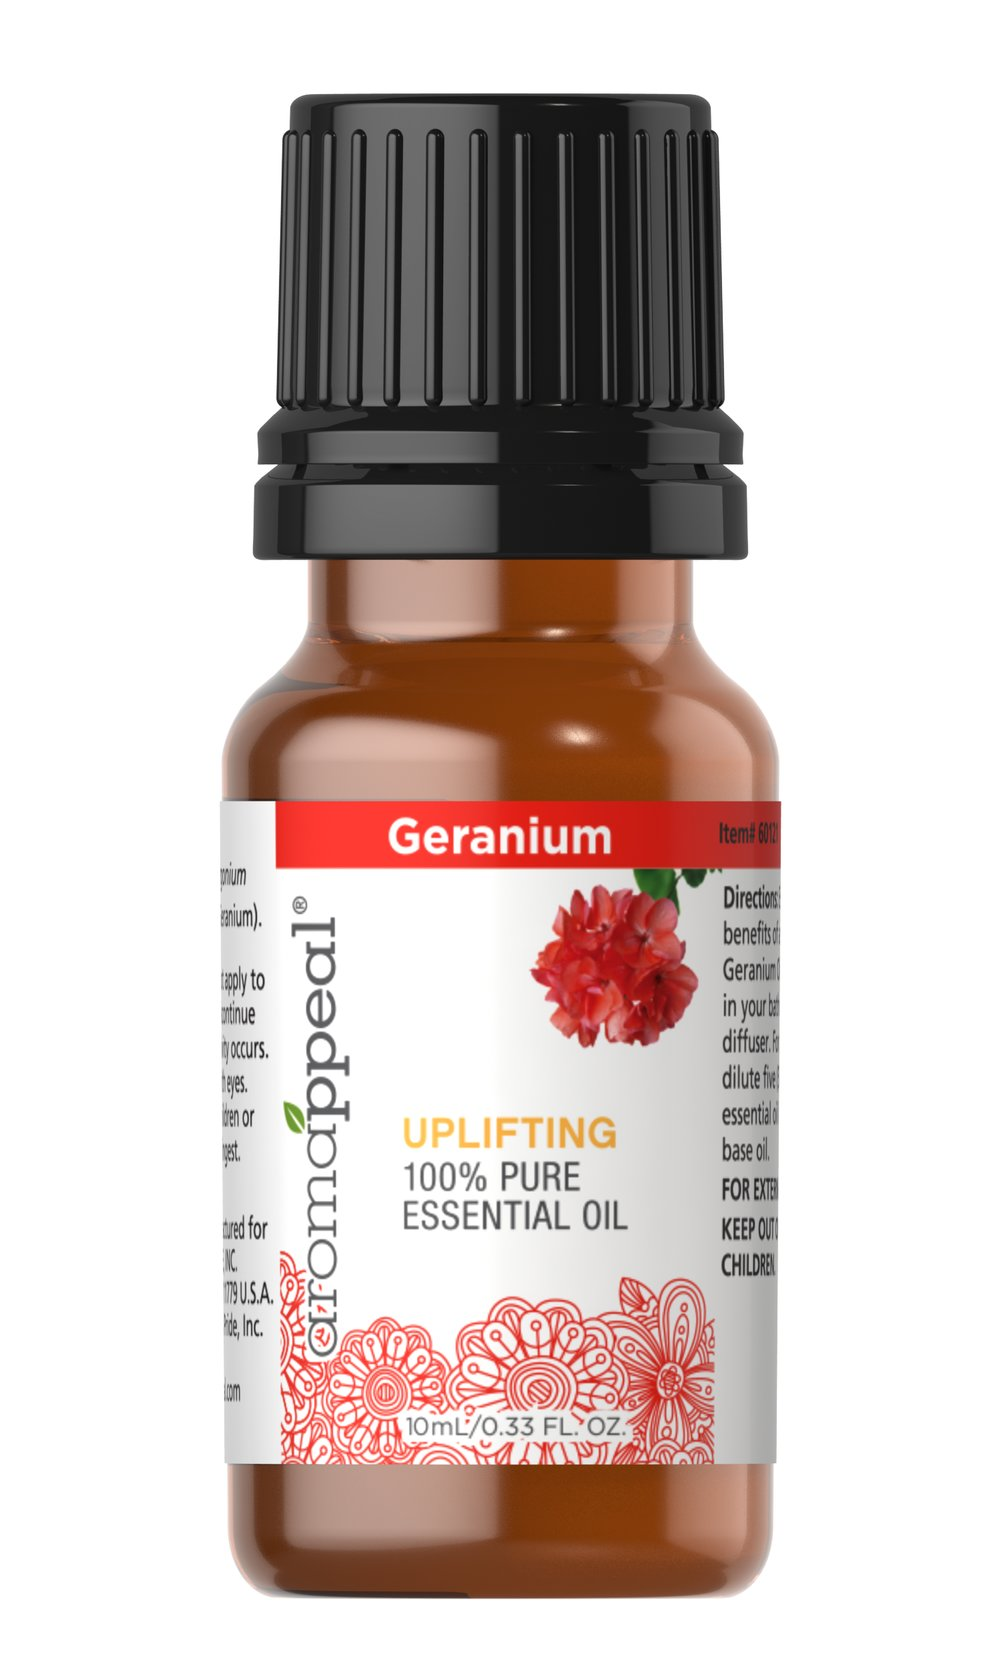 Geranium 100% Pure Essential Oil  10 ml Oil  $21.99